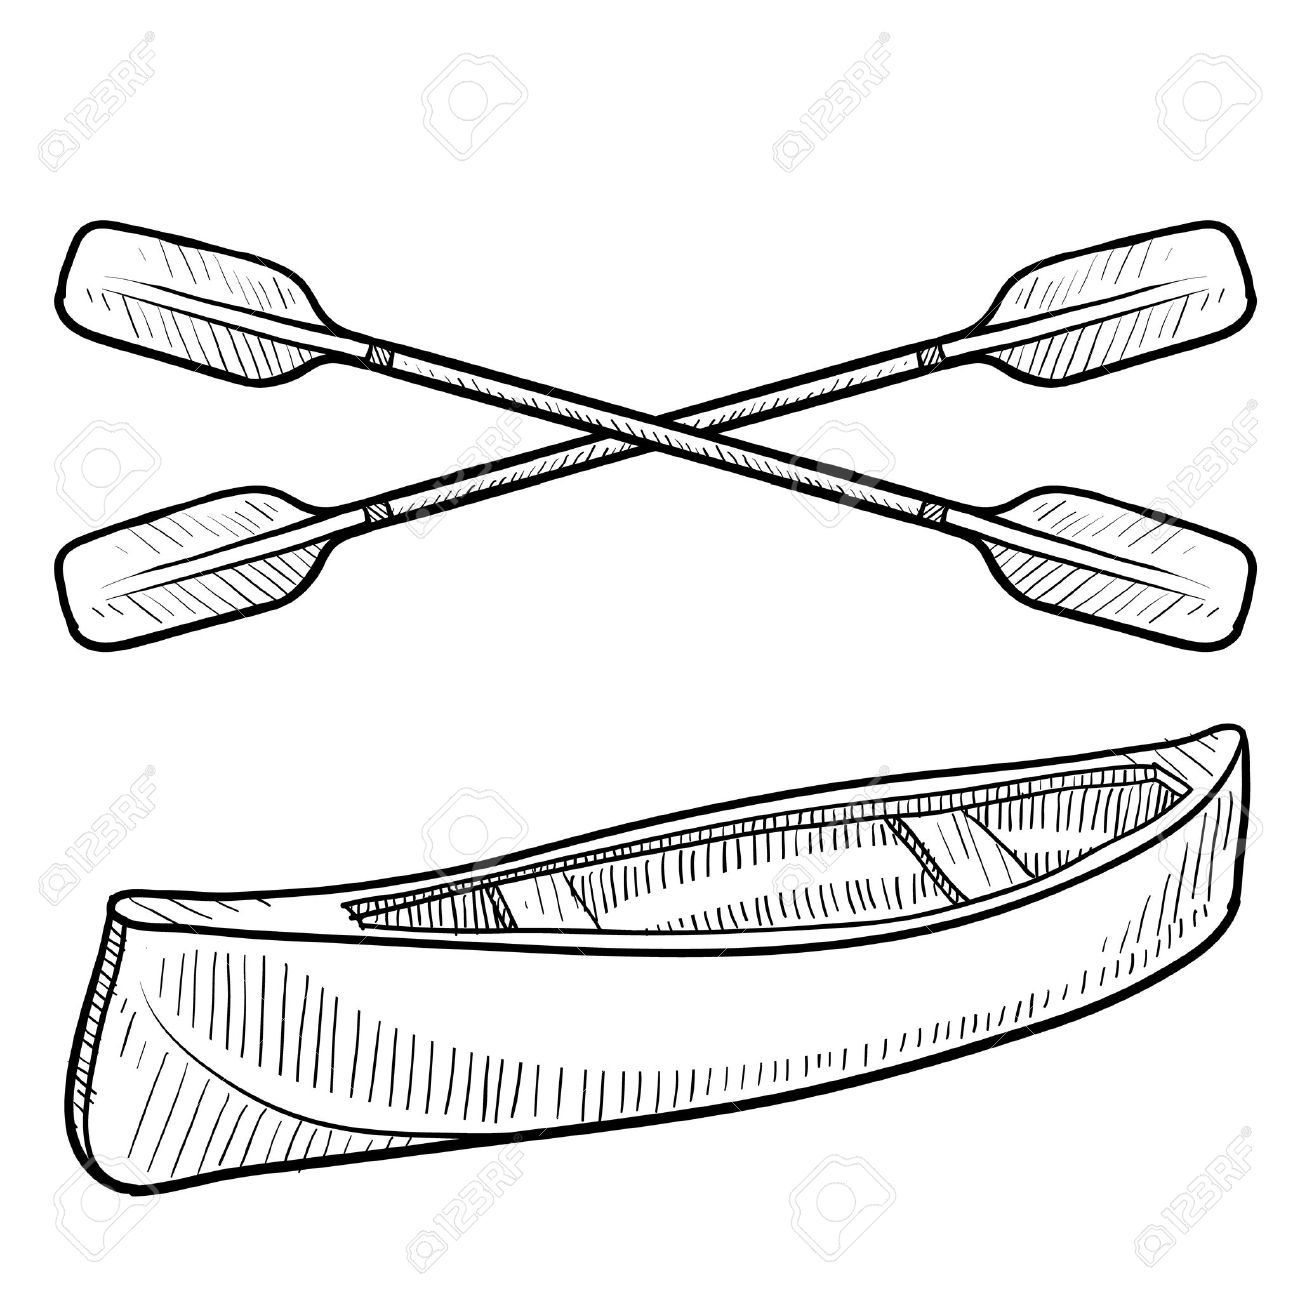 Doodle Style Canoe And Paddles Sketch In Vector Format Stock